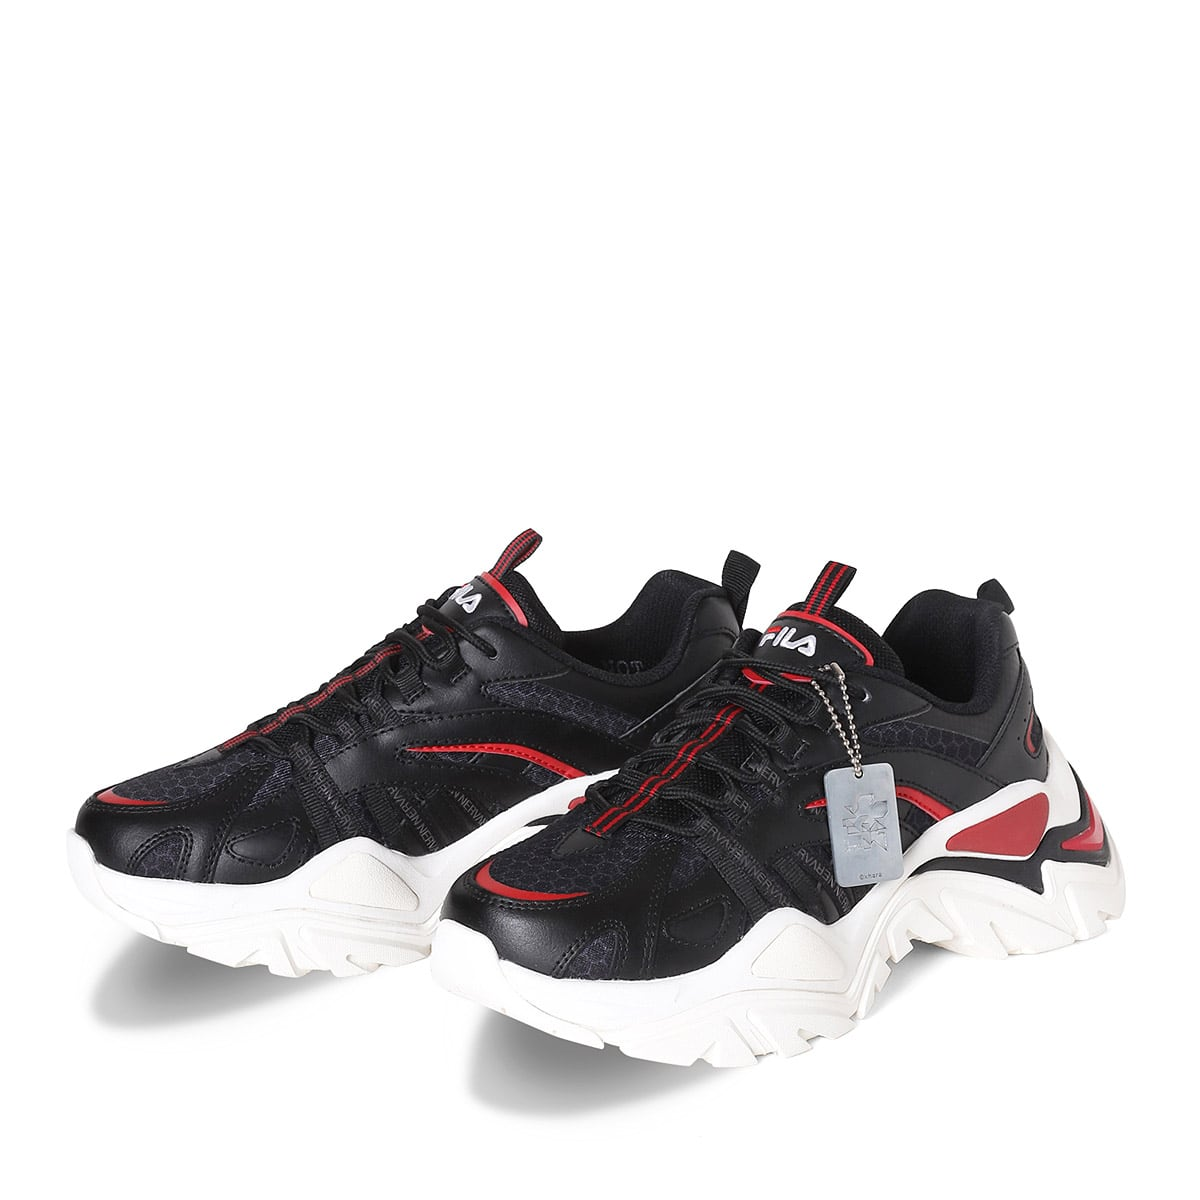 FILA x EVANGELION INTERATION BLACK/RED 21SS-I_photo_large